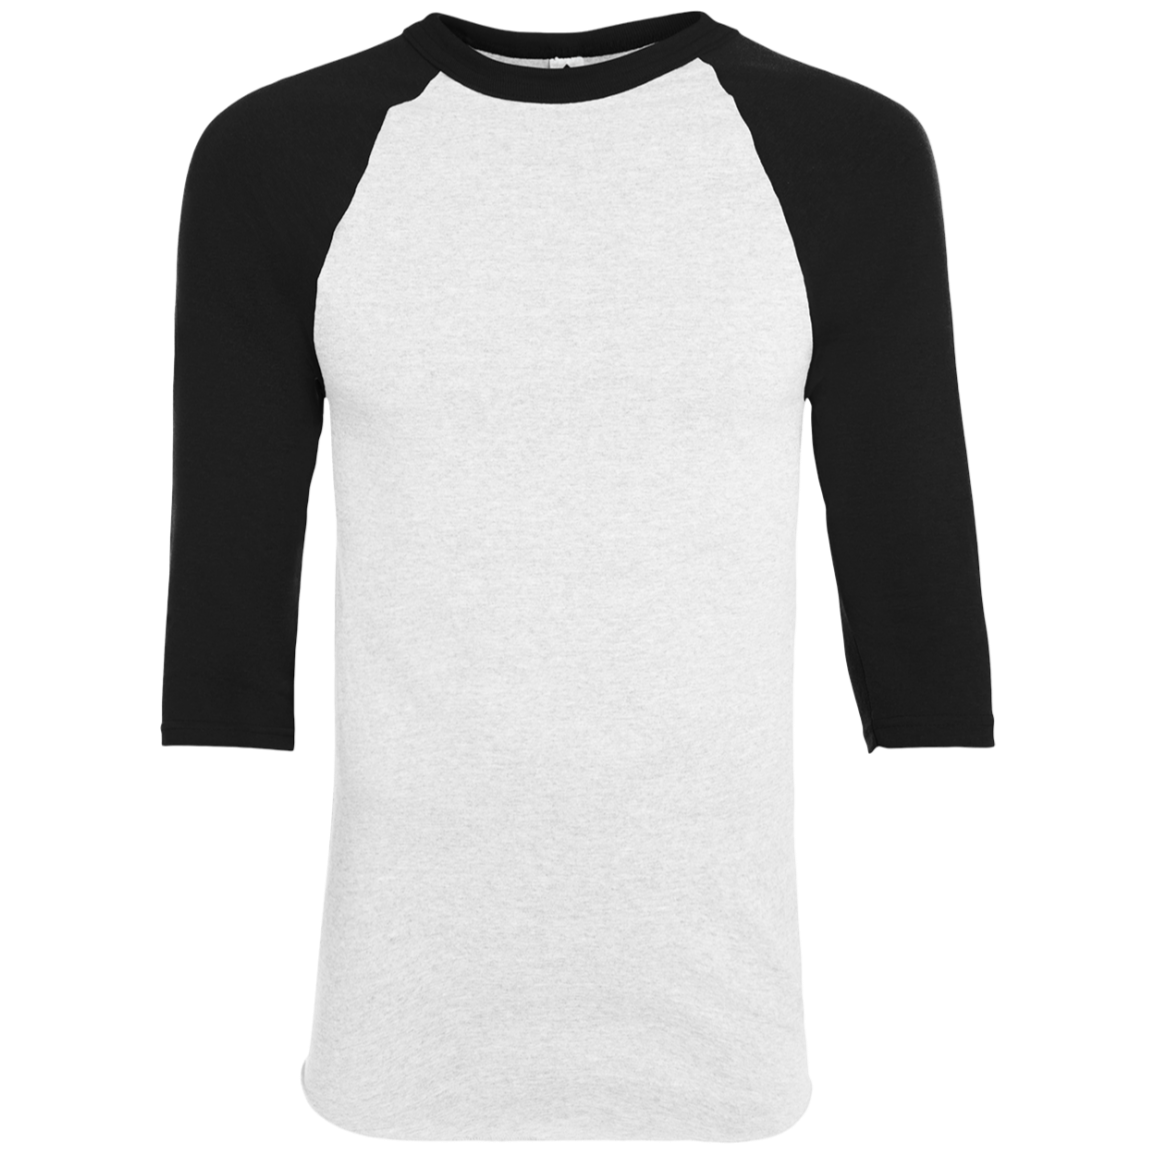 Corning hawks adult colorblock. Jersey clipart athletic wear